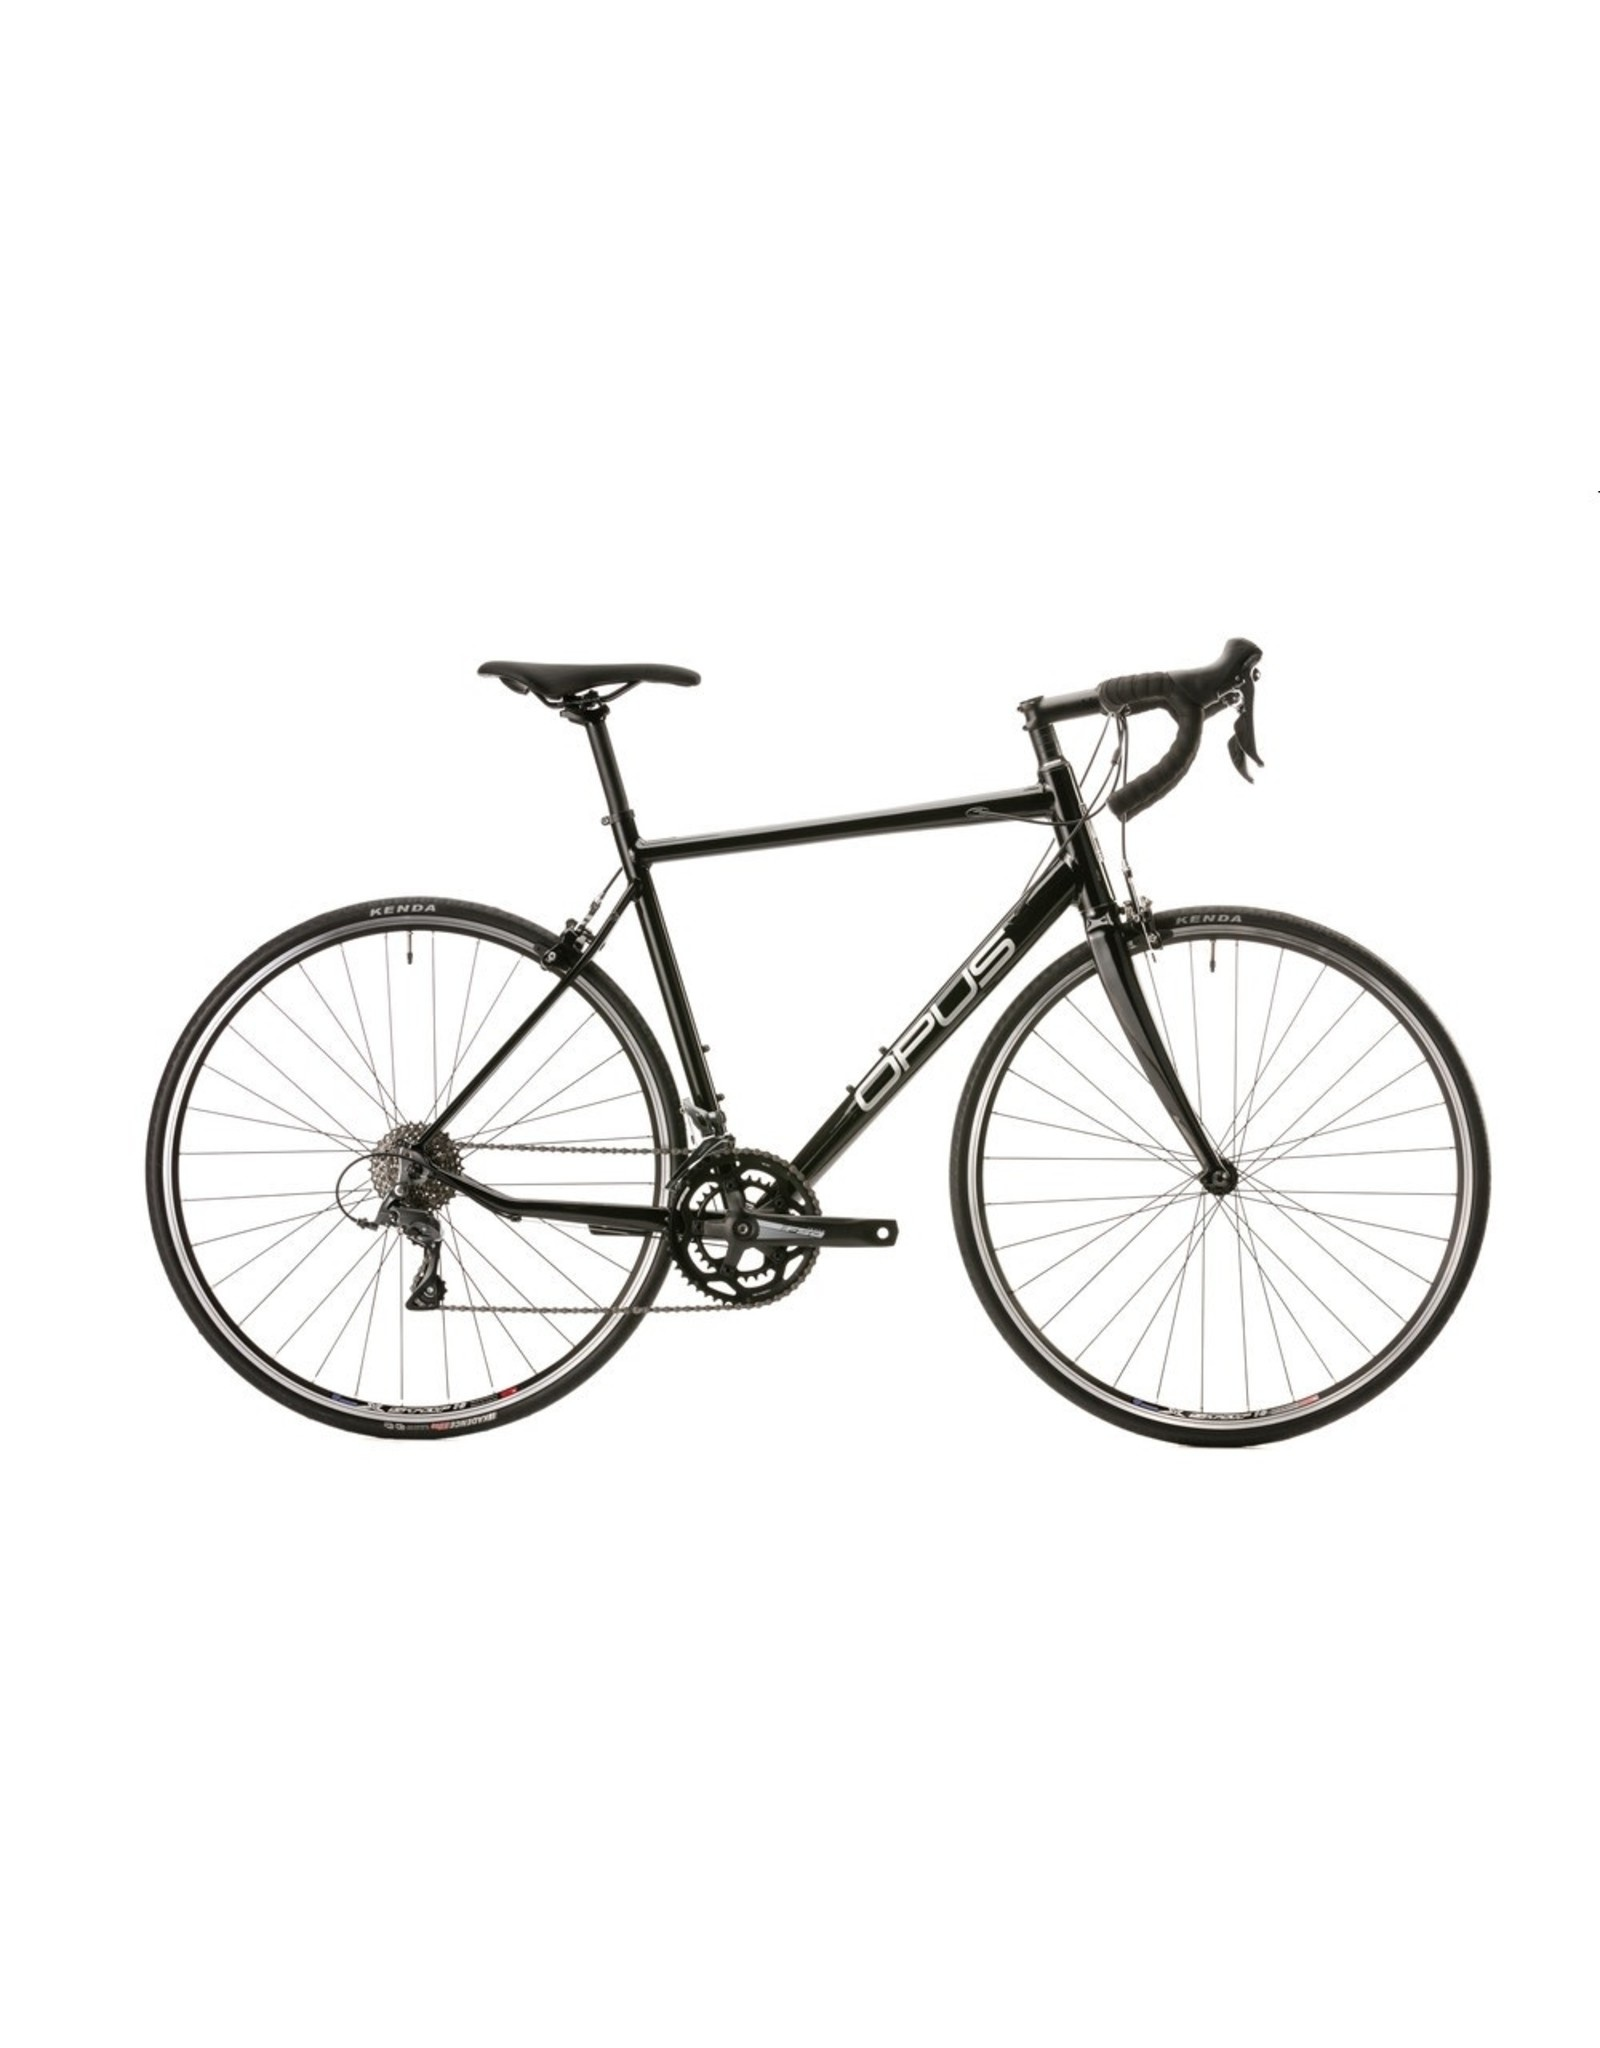 Road bike rental starting at 26,44$